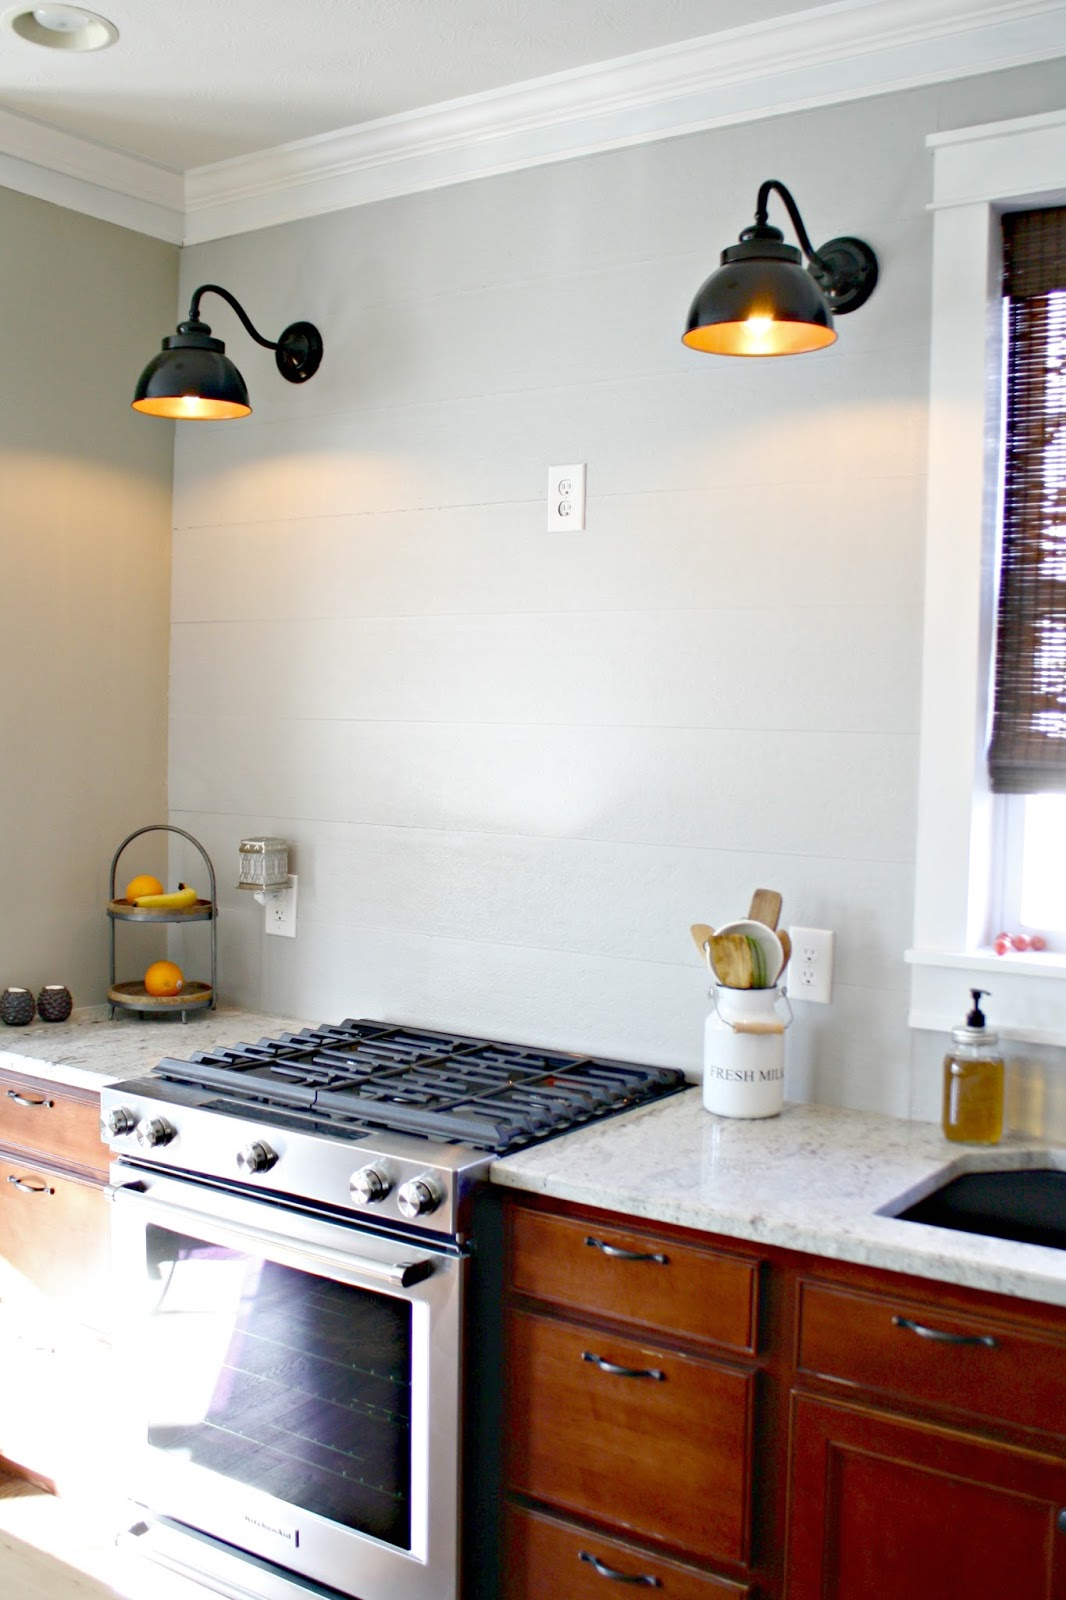 kitchen chimney without exhaust pipe trailer a diy ish wood vent hood from thrifty decor chick